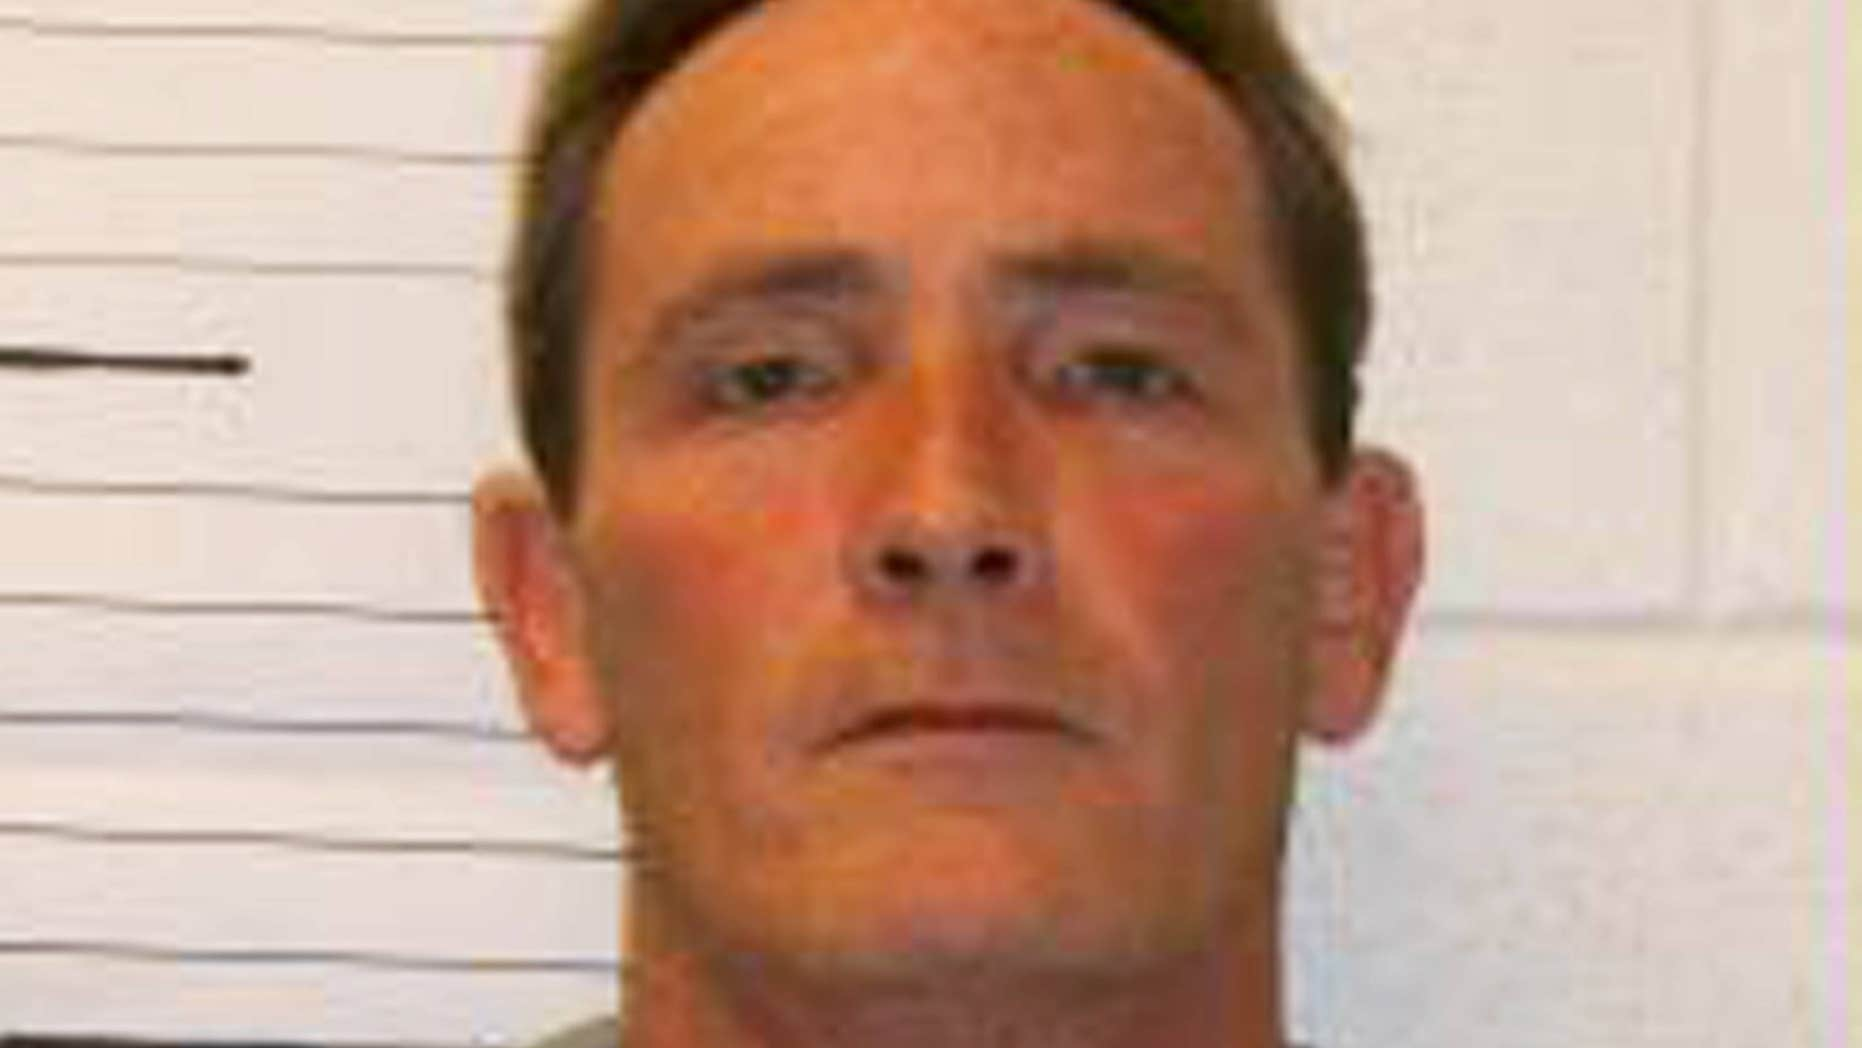 Jan. 1, 2012: Walter Storey of St. Charles, Mo., who faces the death penalty for killing Jill Frey in 1990.